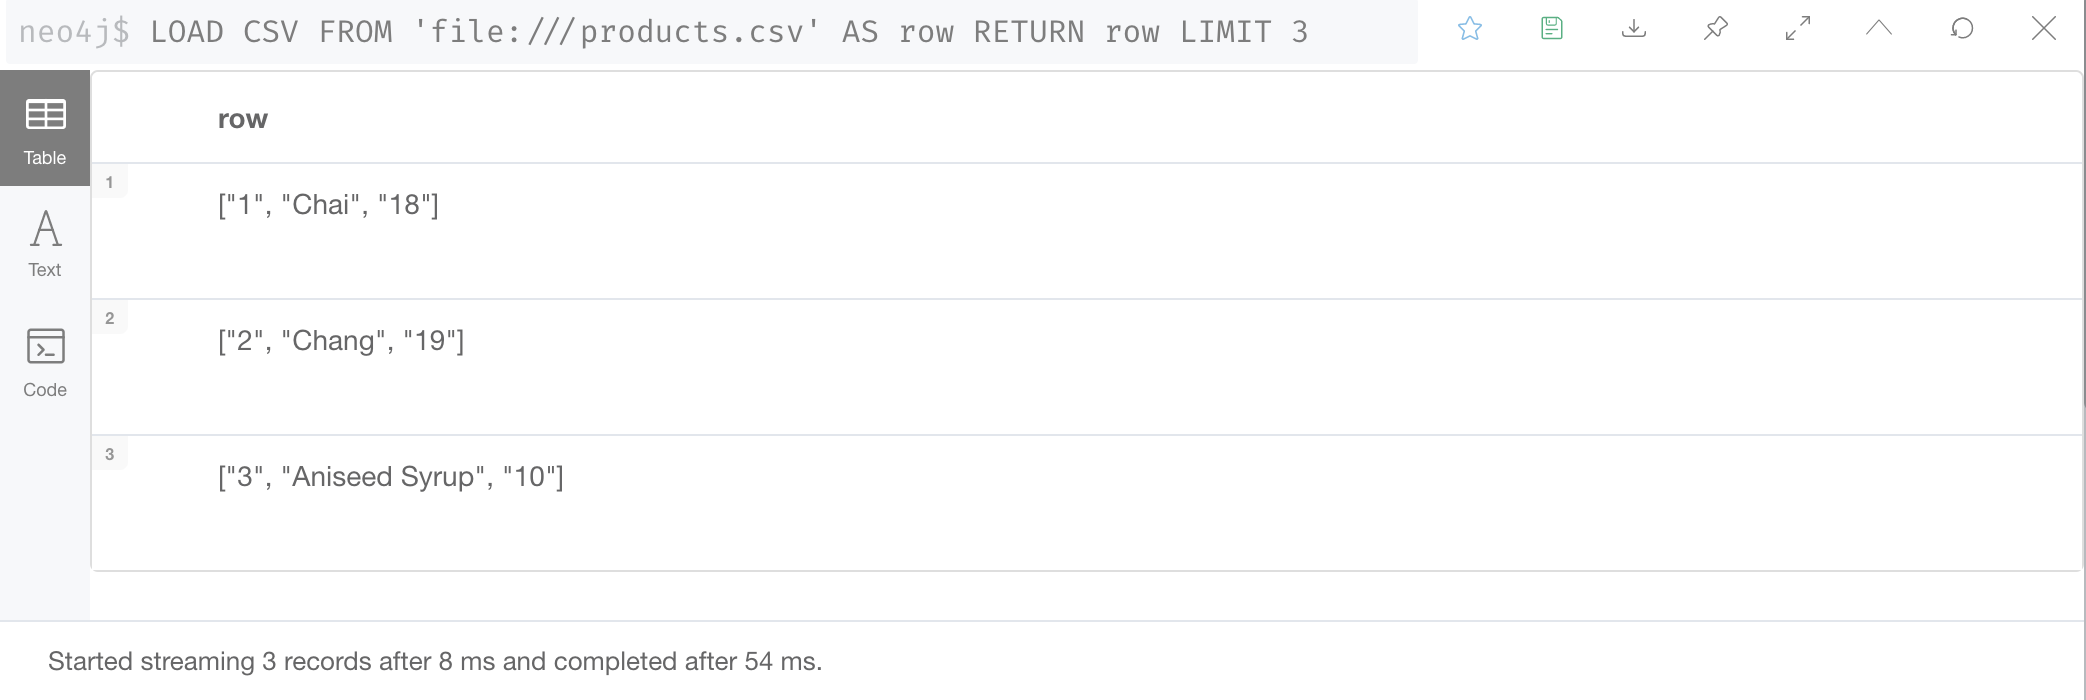 developer desktop csv import test load 1